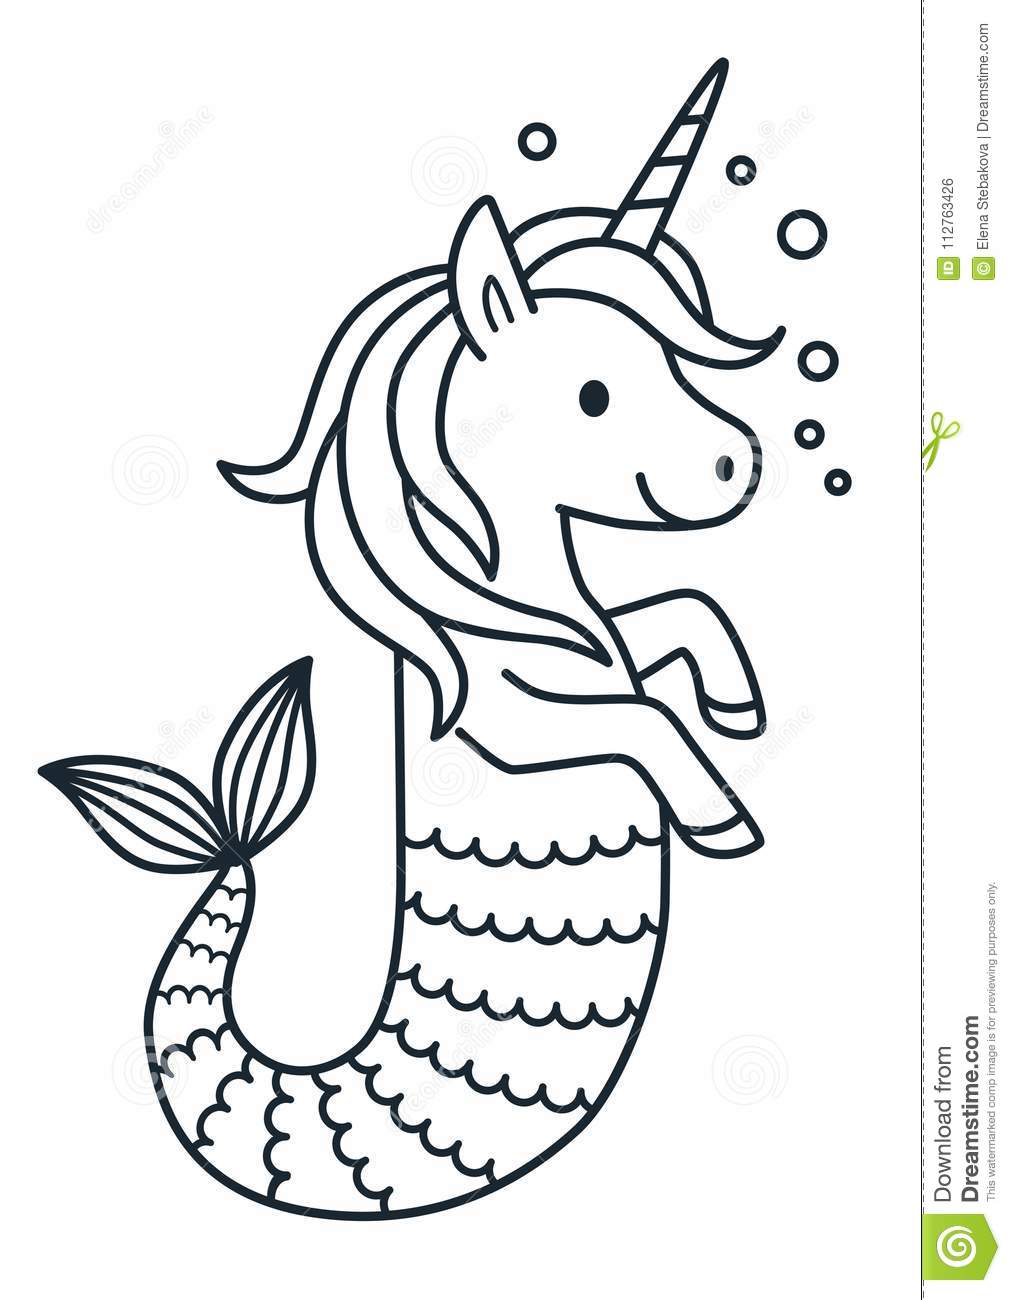 Cute Unicorn Mermaid Coloring Page Cartoon Illustration. Stock ...